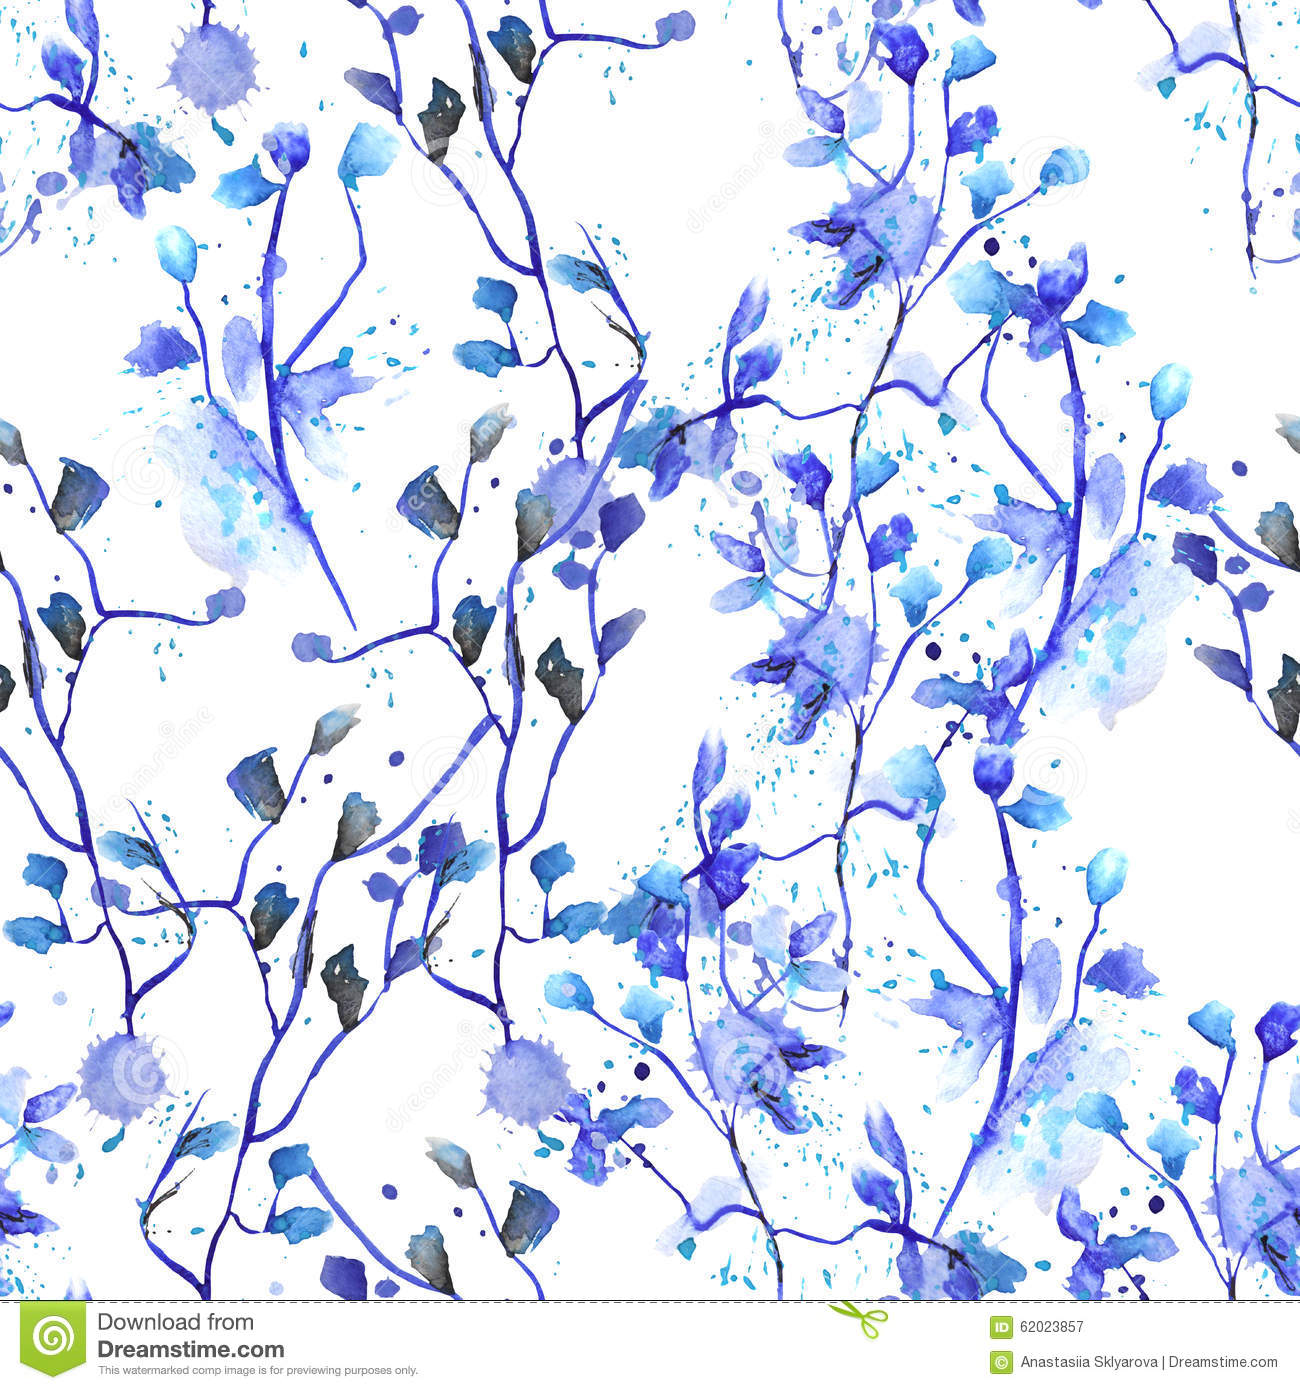 Seamless floral pattern with watercolor hand-draw blue flowers on the branches with blue leaves painted with blots